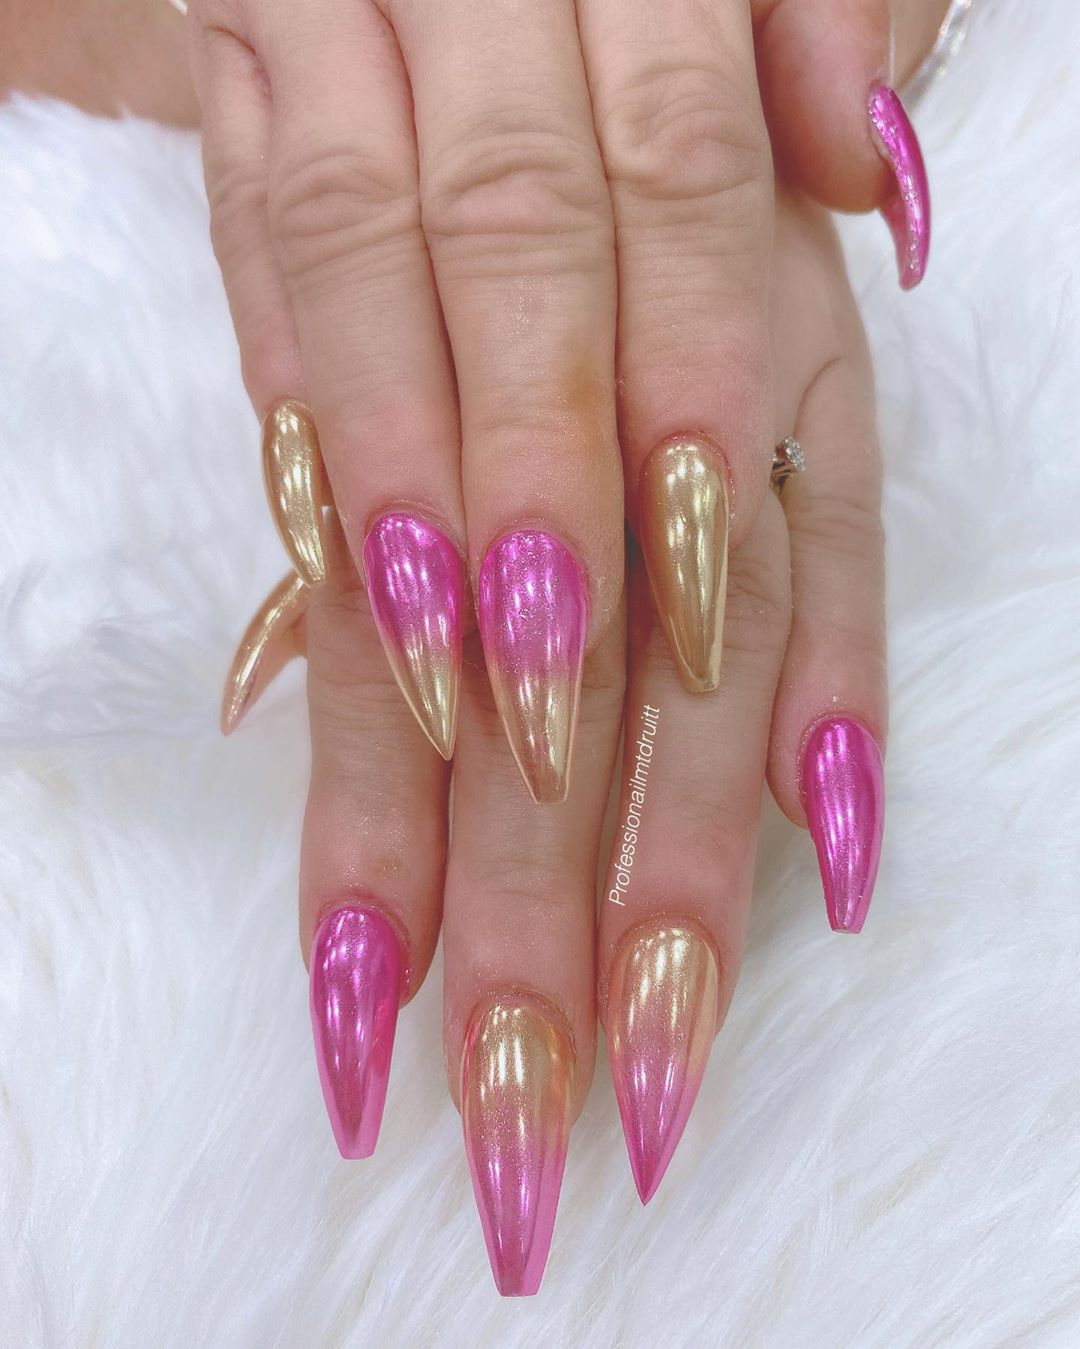 Ombre pink metallic nails